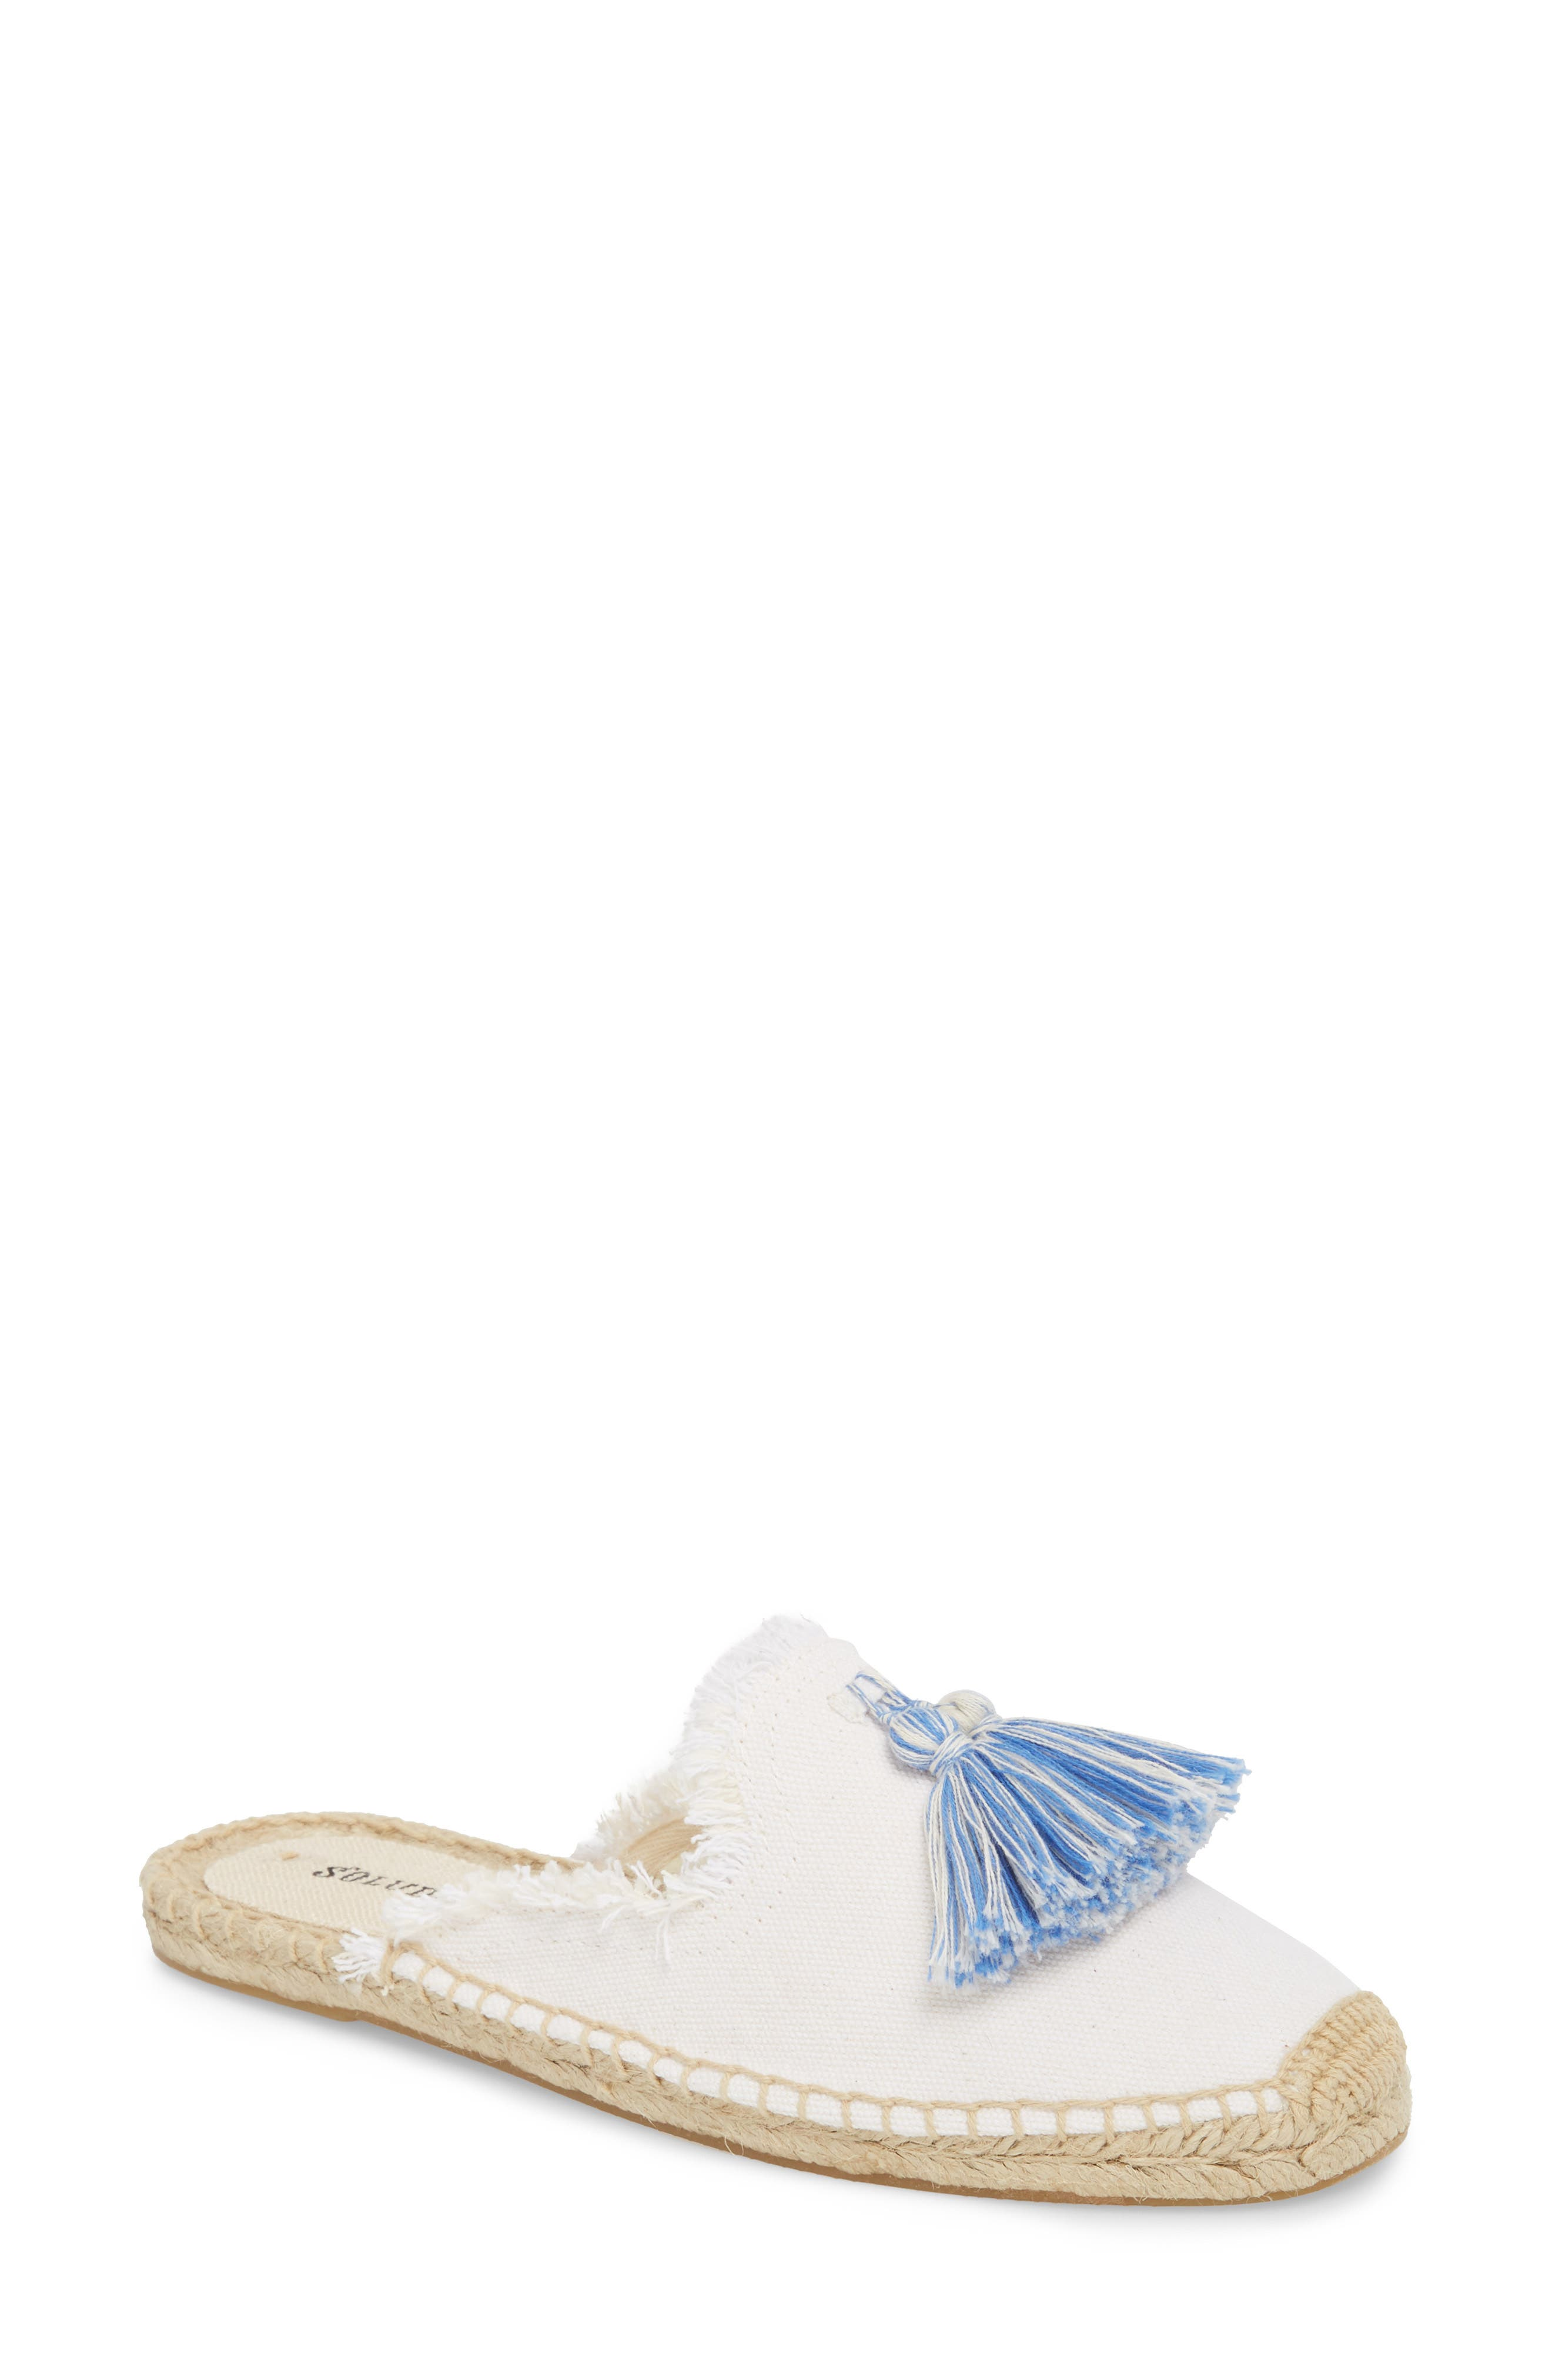 Frayed Tassel Espadrille Loafer Mule,                         Main,                         color, WHITE